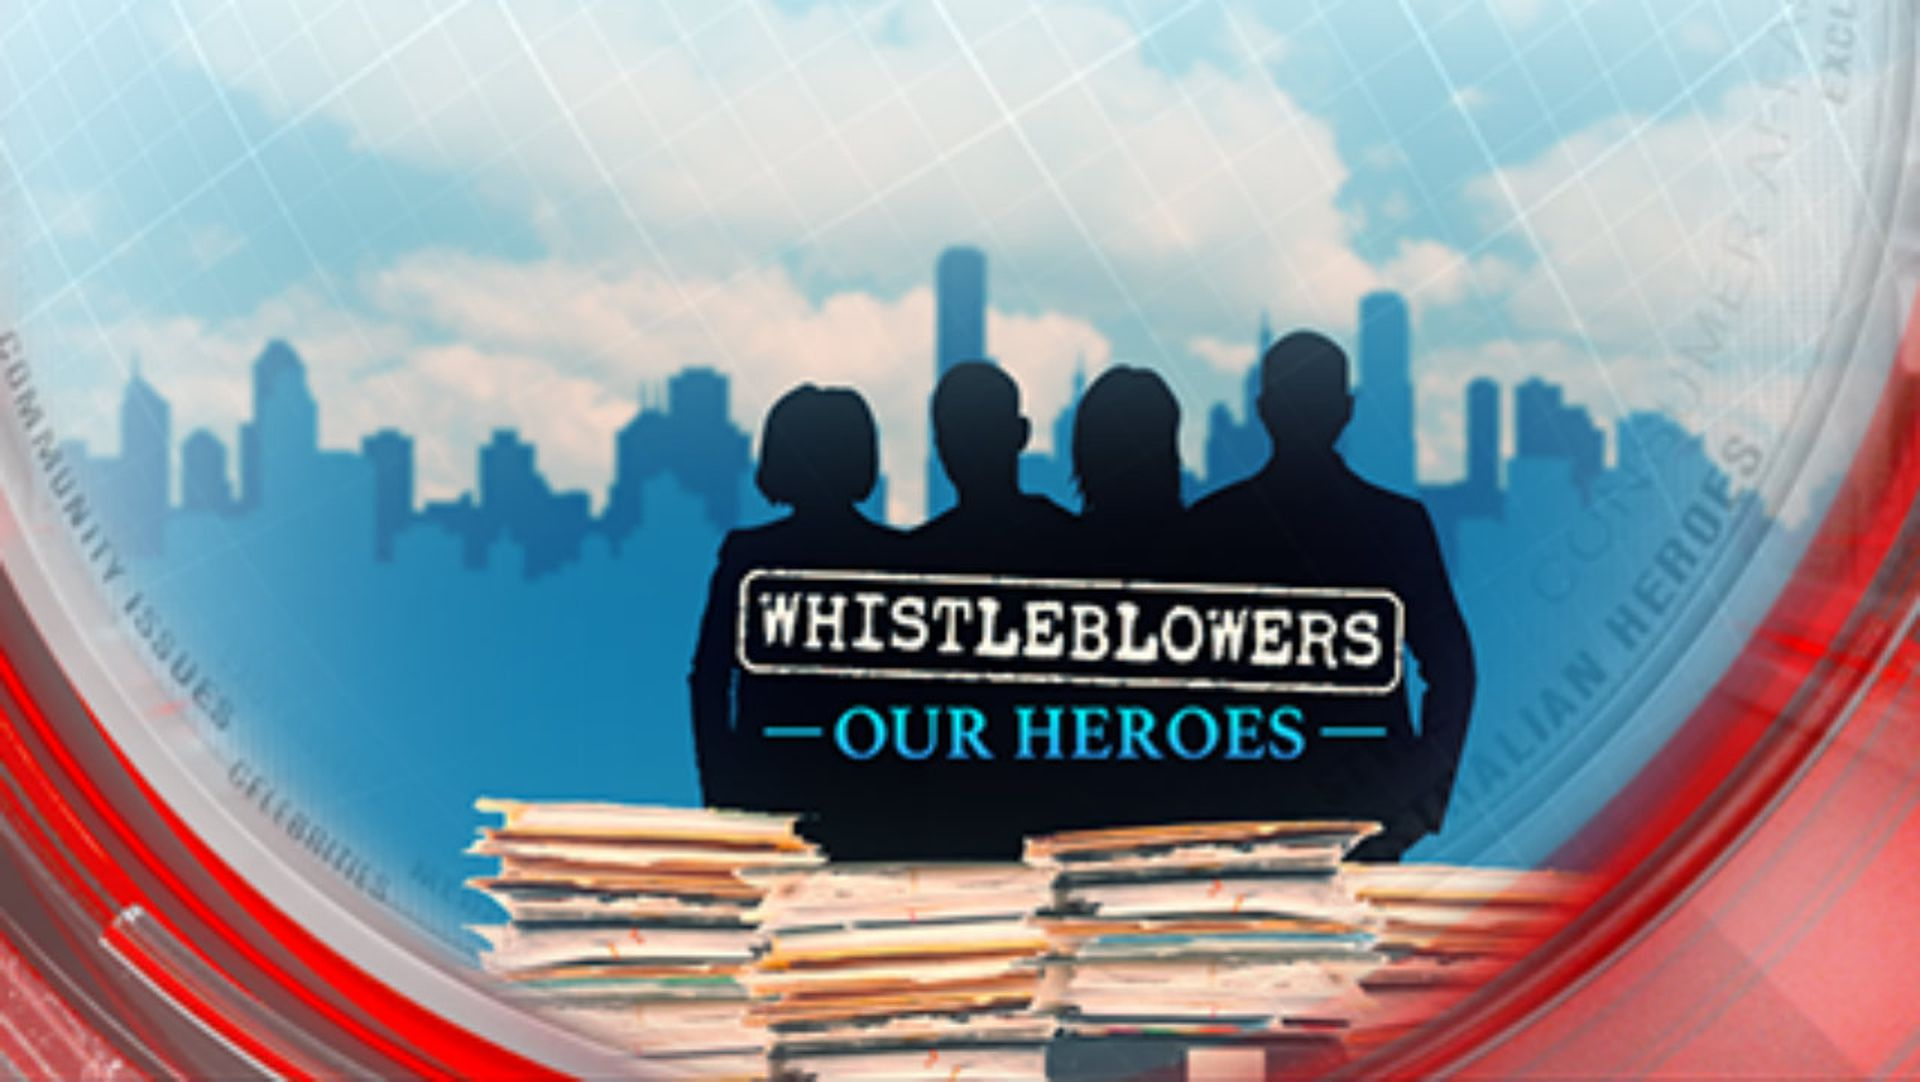 Whistleblowers - Our heroes: A Current Affair 2019, Short Video